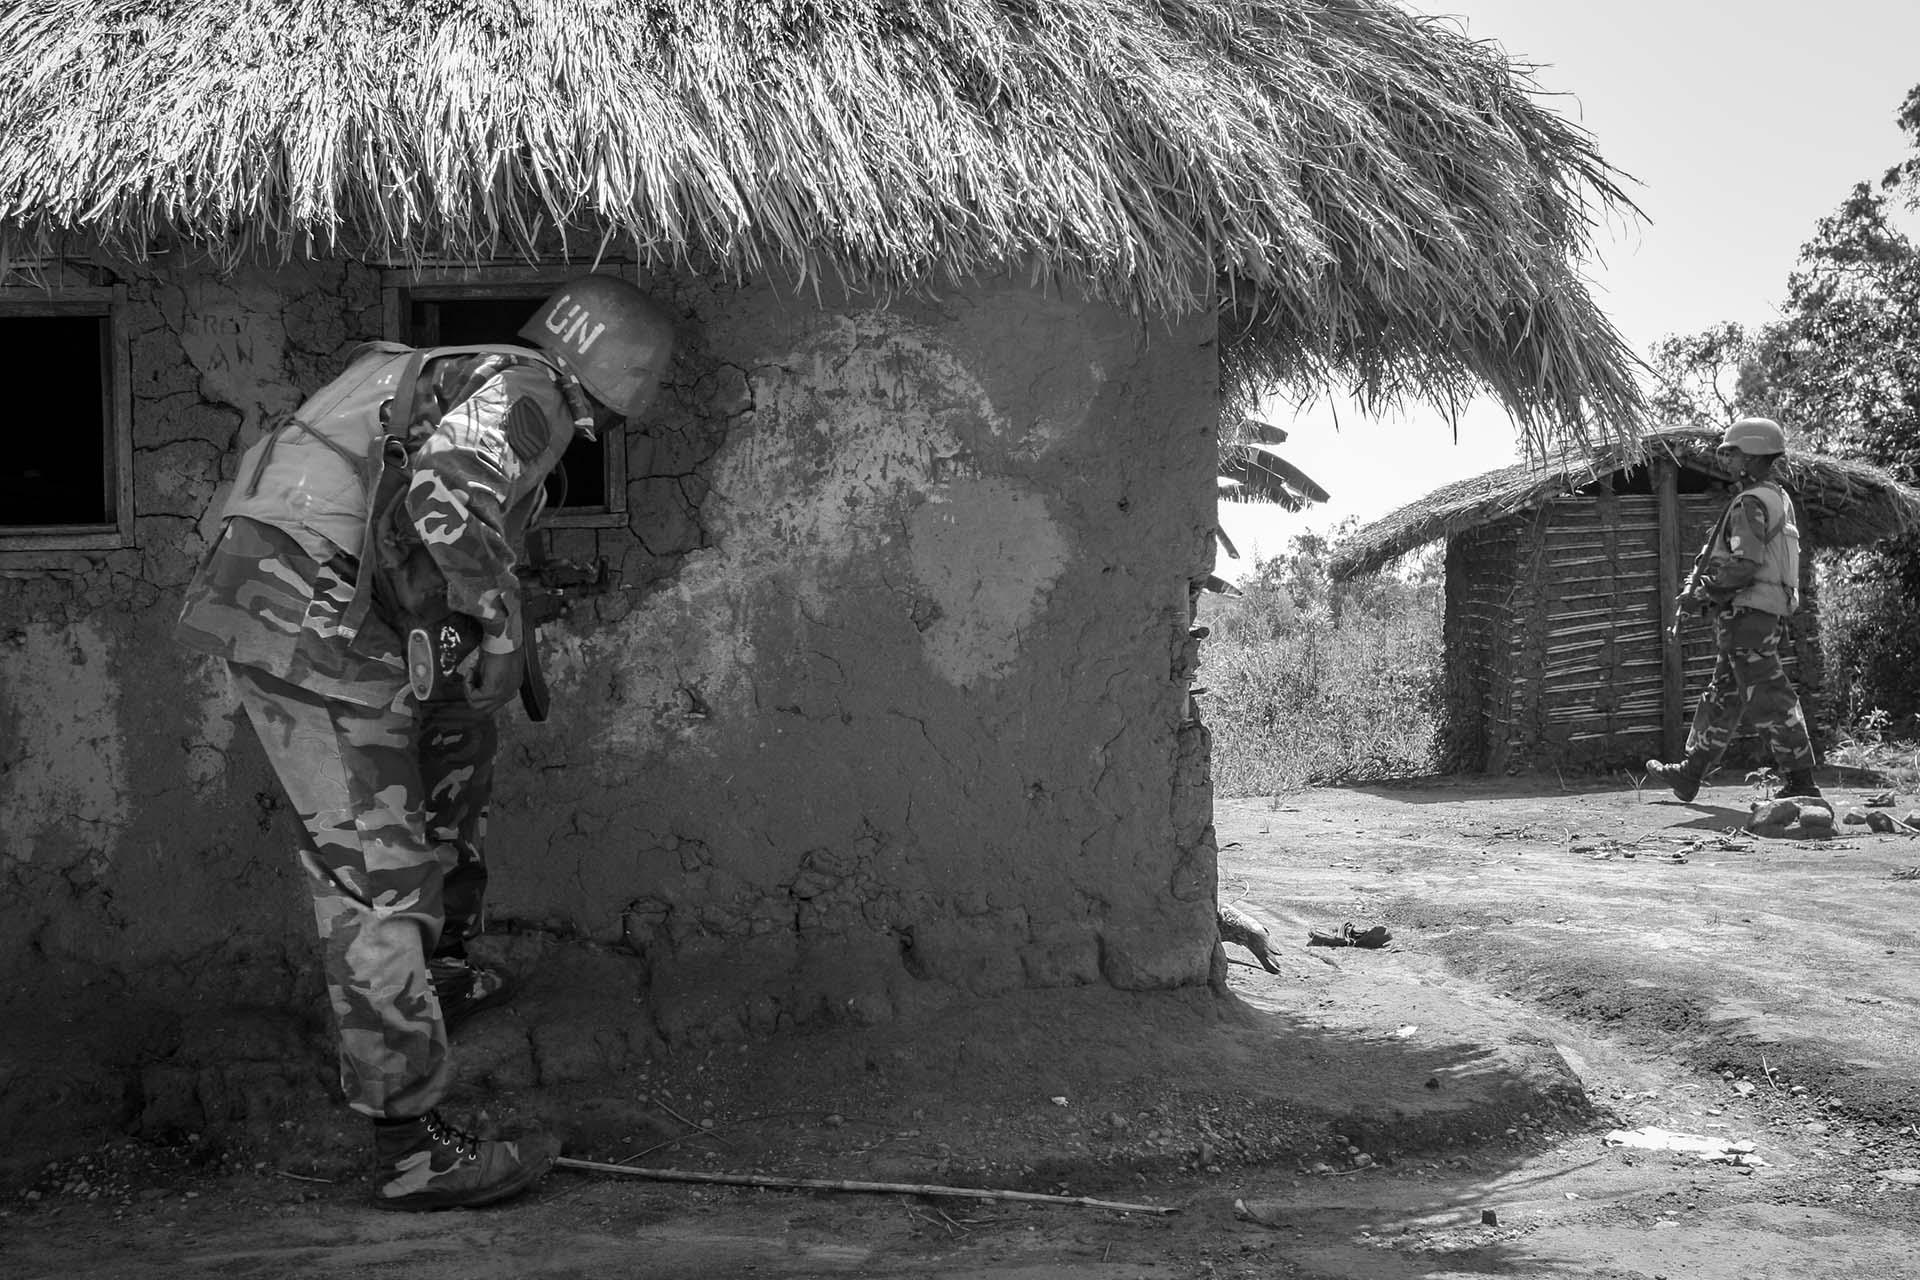 UN peacekeeper from Bangladesh conduct a foot patrol in the village of Kaswara where there was a fighting between militia and government soldiers supported by UN.